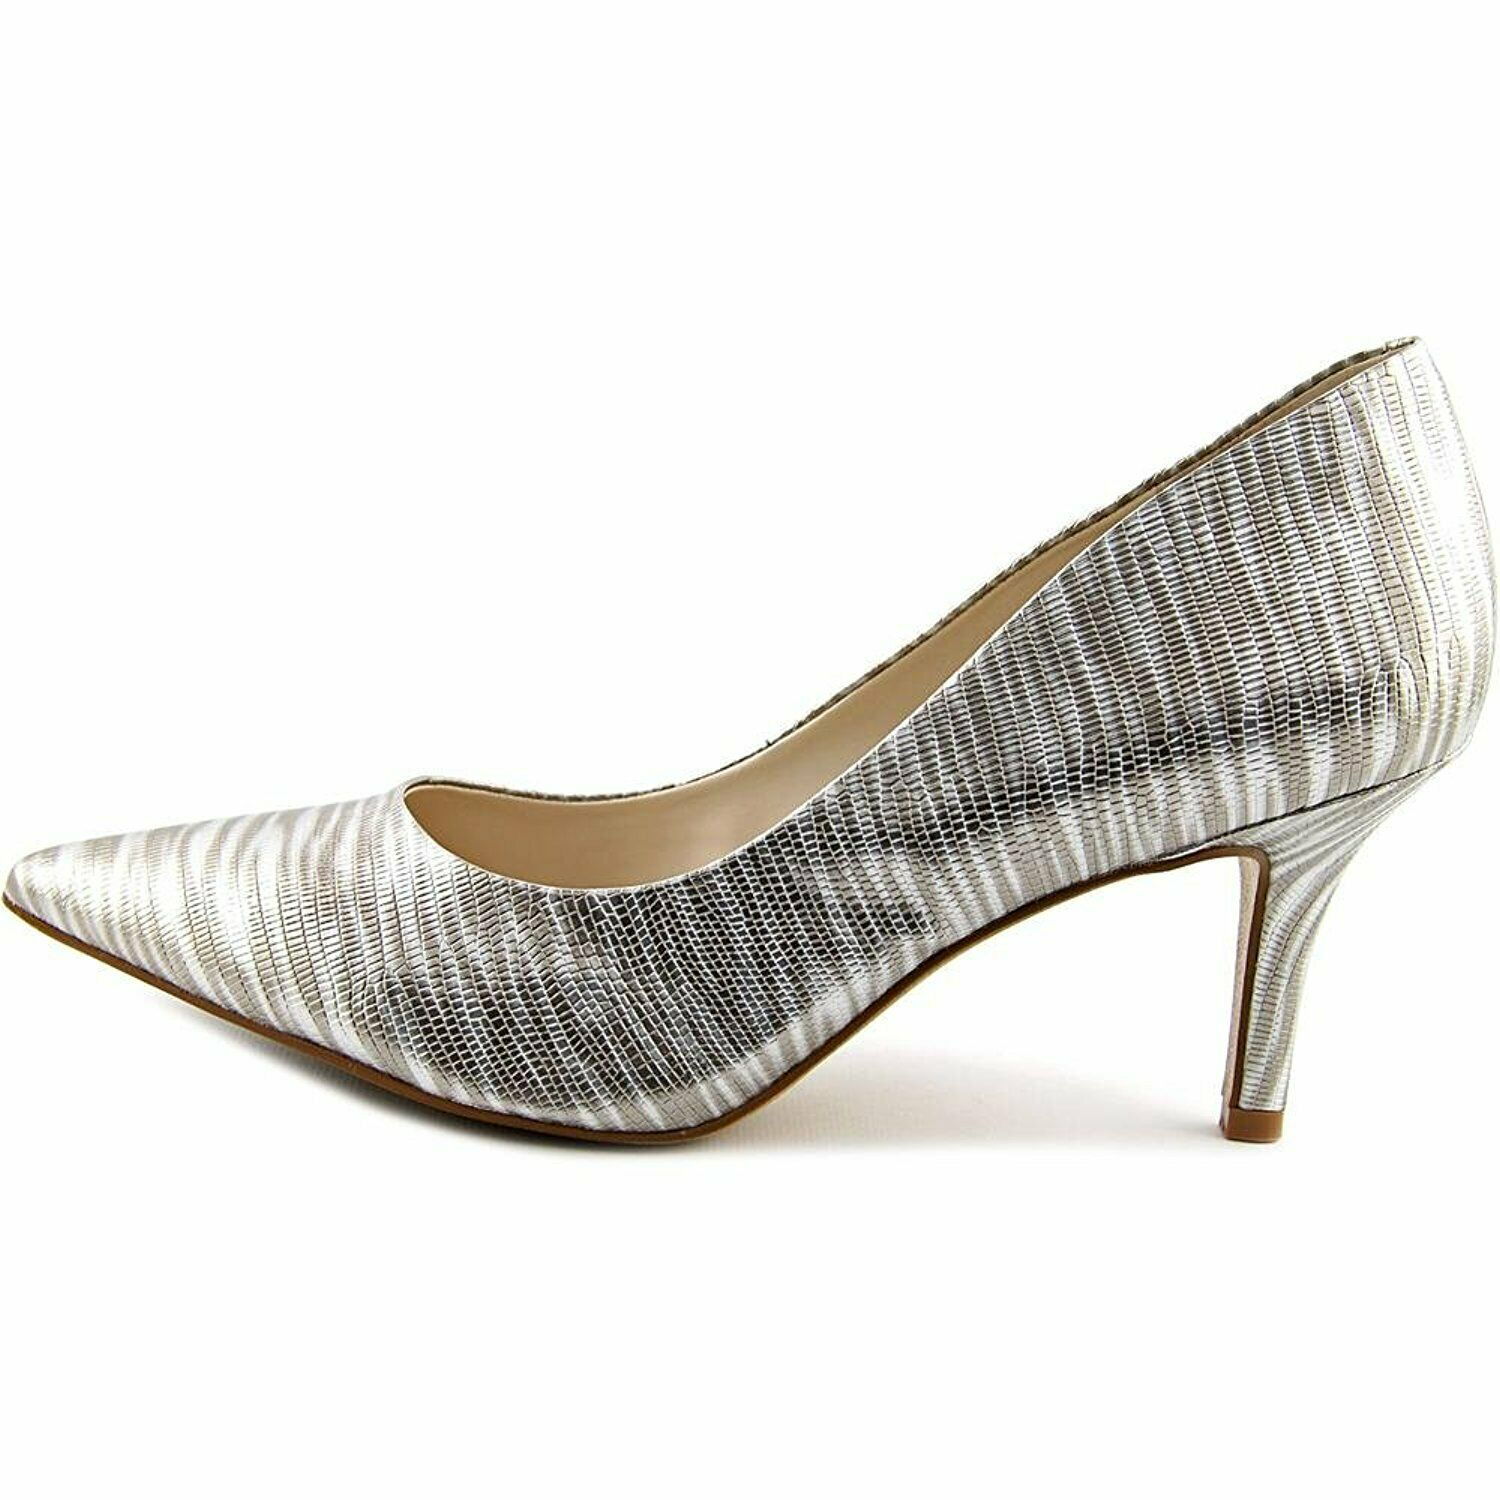 Alfani Womens Jeules Leather Pointed Toe Classic Pumps, Pewter, Size 6.5 YzL3 US